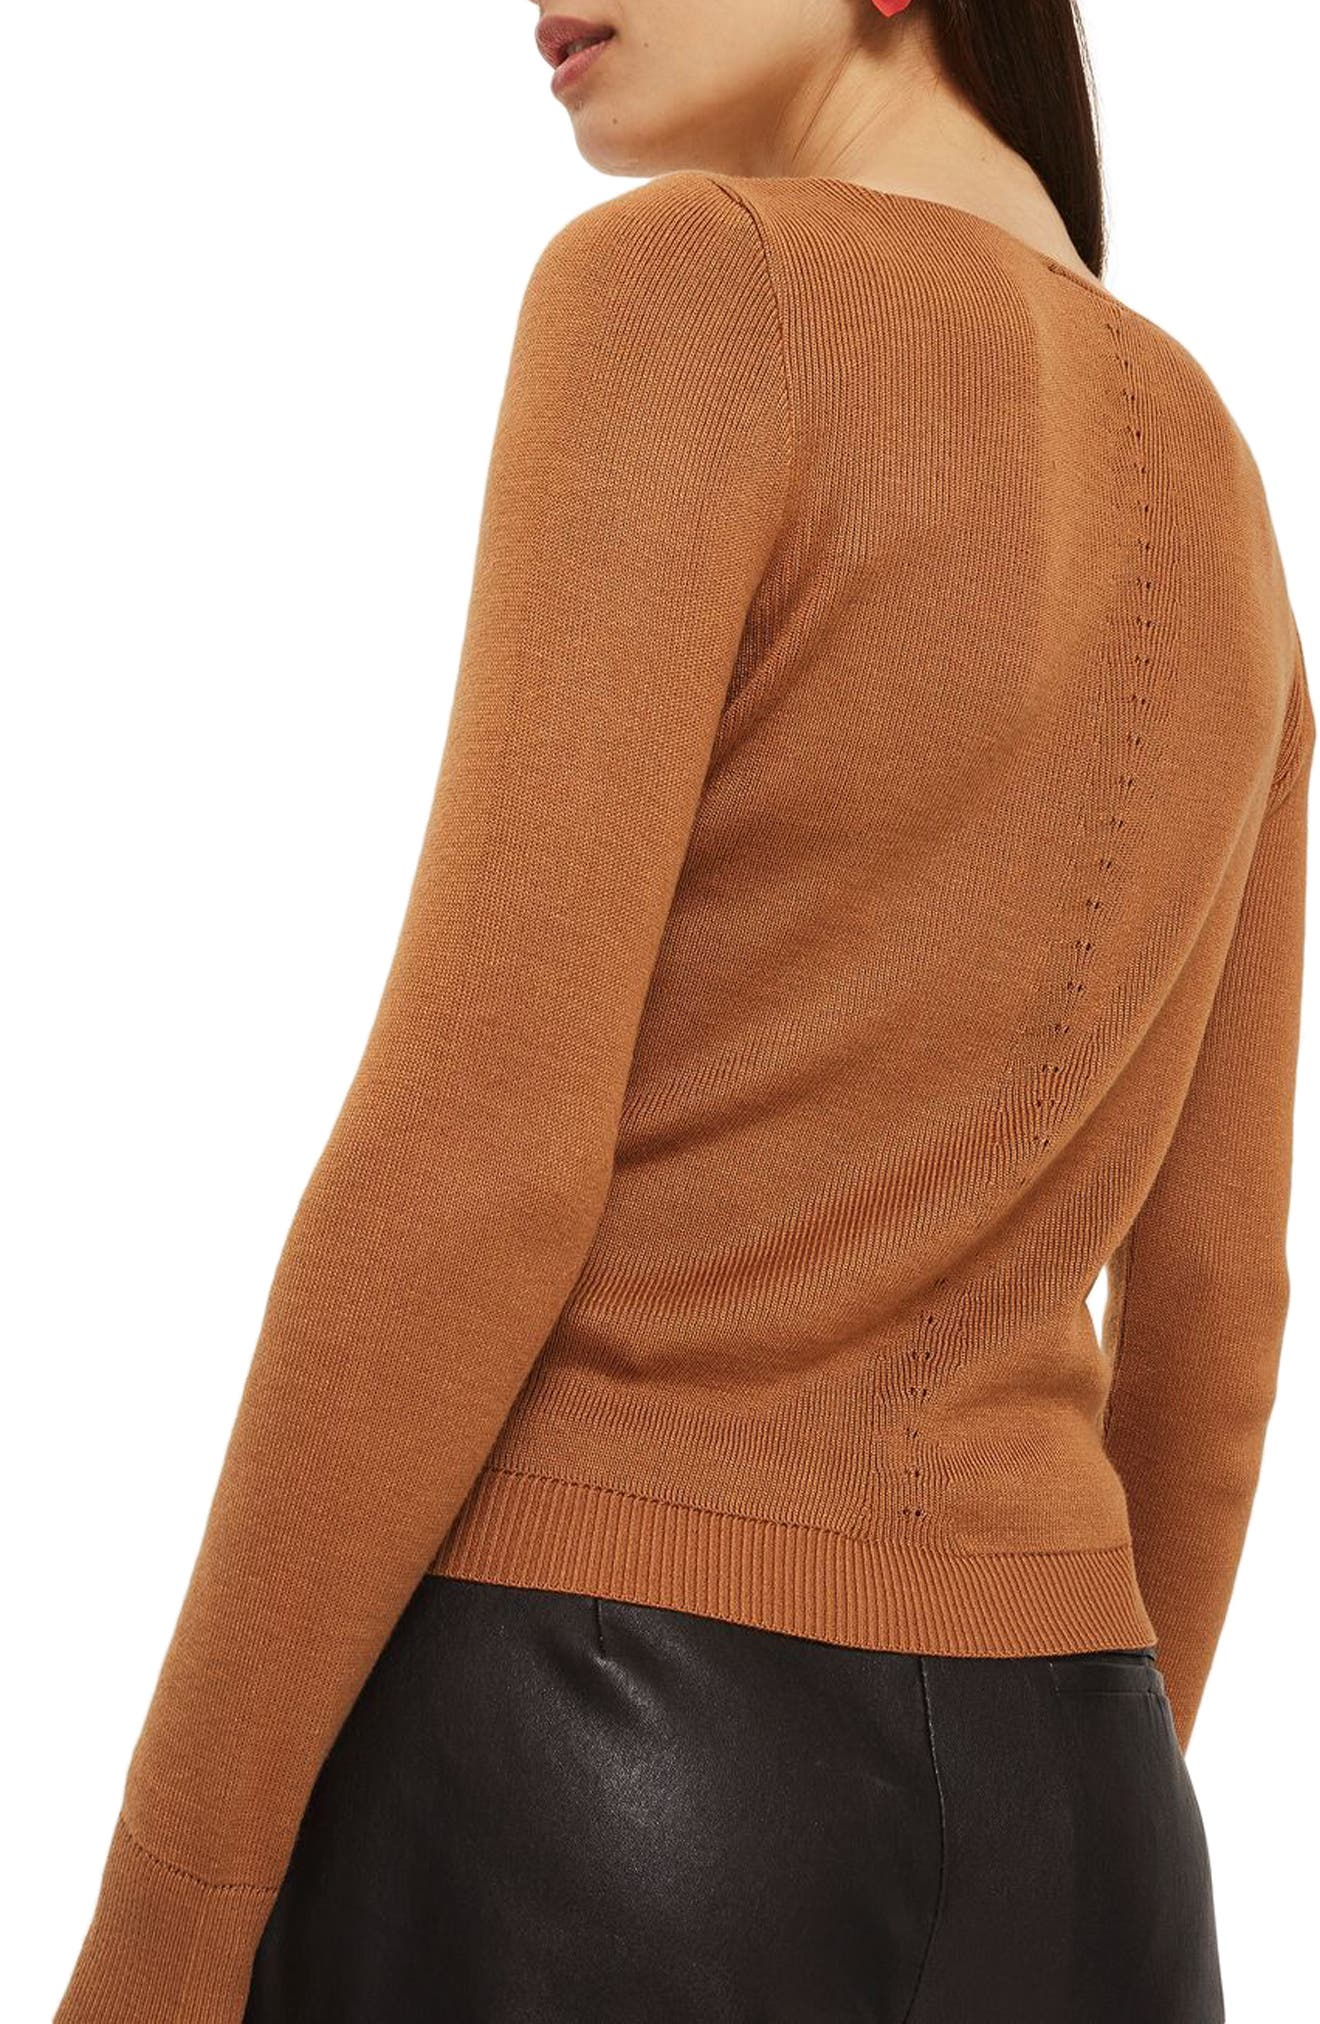 Sweetheart Neck Sweater,                             Alternate thumbnail 3, color,                             Brown